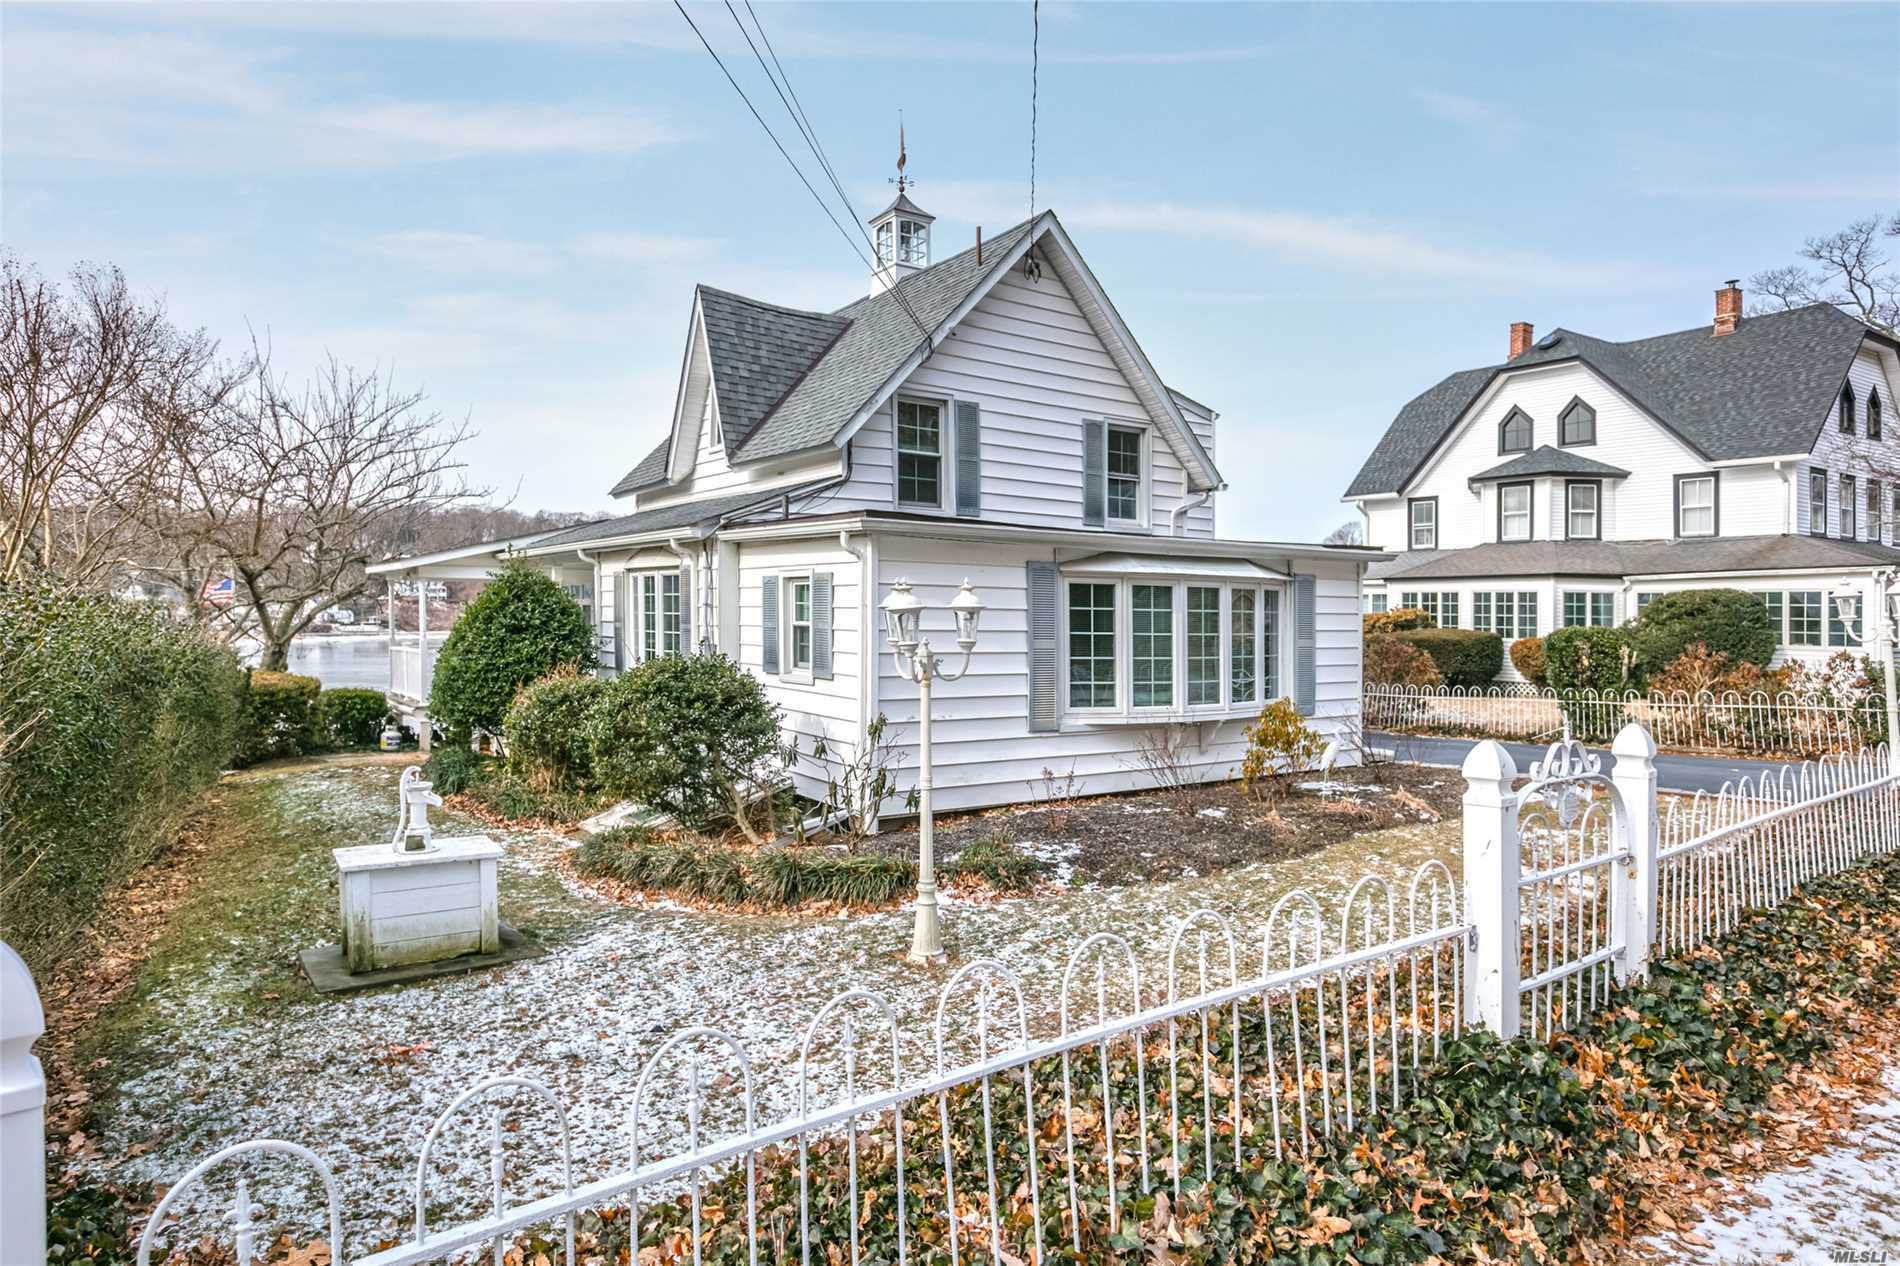 Waterfront. 58' Bulkhead. Charming Circa 1860 Sea Captains House. Panoramic Waterviews Of Centerport Harbor And Mill Dam Bridge. Relax & Enjoy Breathtaking Sunsets. Entry, Parlor With Bow Window, Full Bath, Formal Dining Room, Living Room, Kitchen, Office/Play Rm, 3 Season Sunroom (28'X10.5'). Trex Decking Off Dining Rm. 2 Bedrooms, Sitting Room, Full Bath. Walkout Lower Level, Recroom/Bar, Wood Stove, Half Bth. Updates: Windows, Roof, Gas Boiler/Hw Heater, 200 Amp Electric And Gas Generator.